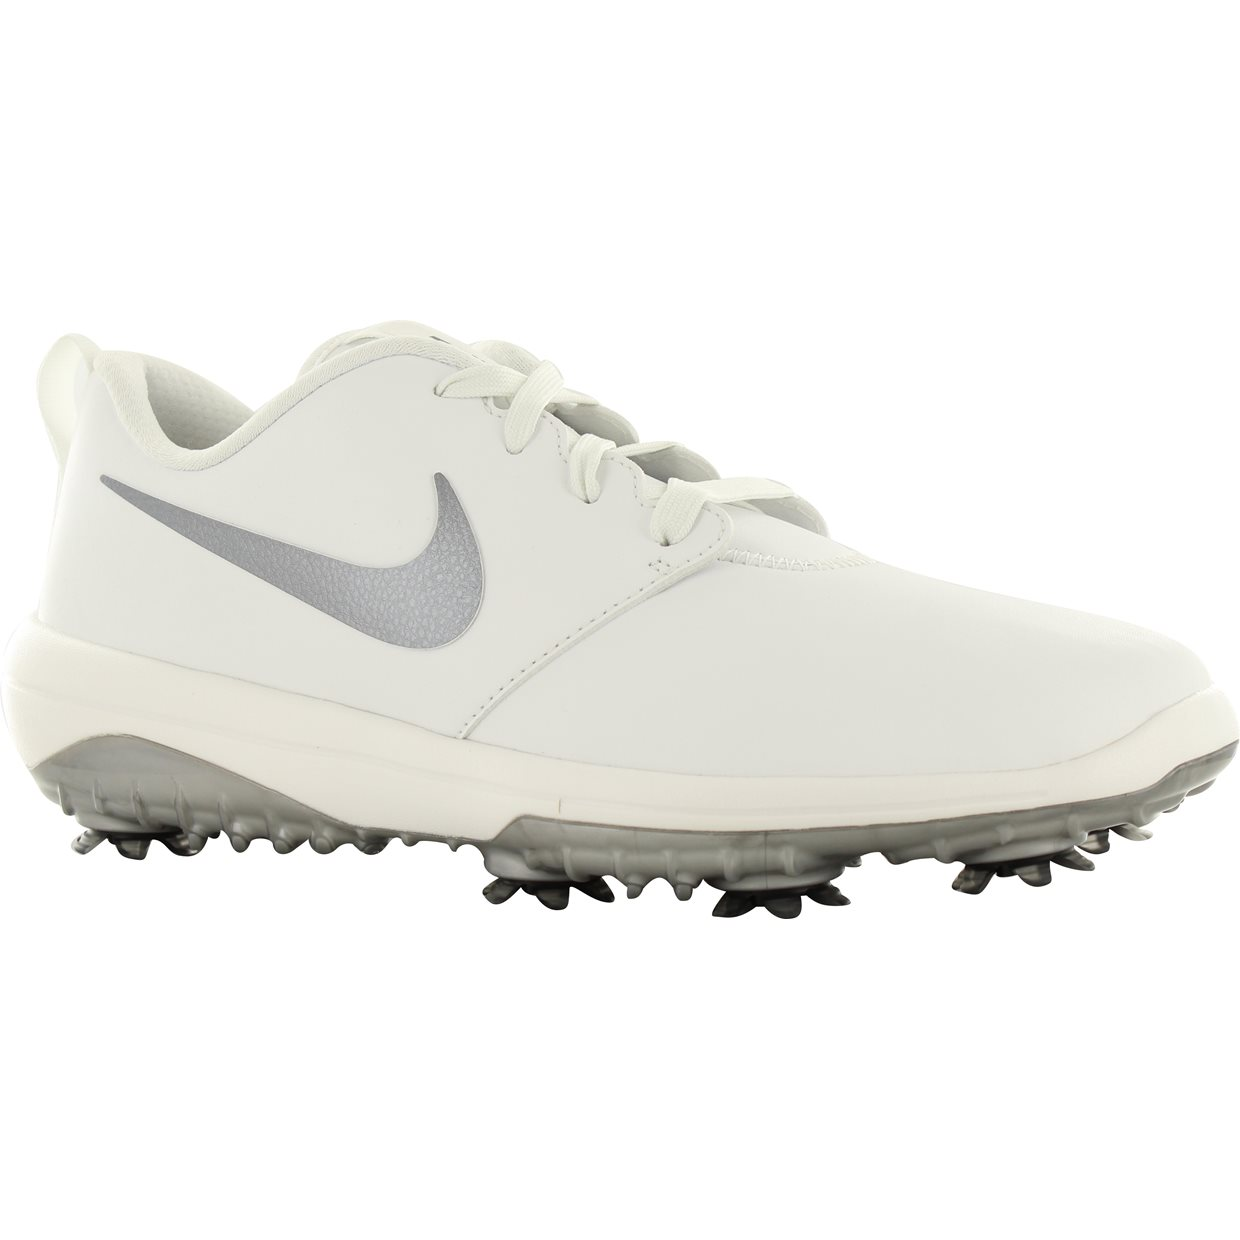 7effc0f881ba5 Nike Roshe G Tour Ladies Golf Shoes at GlobalGolf.com